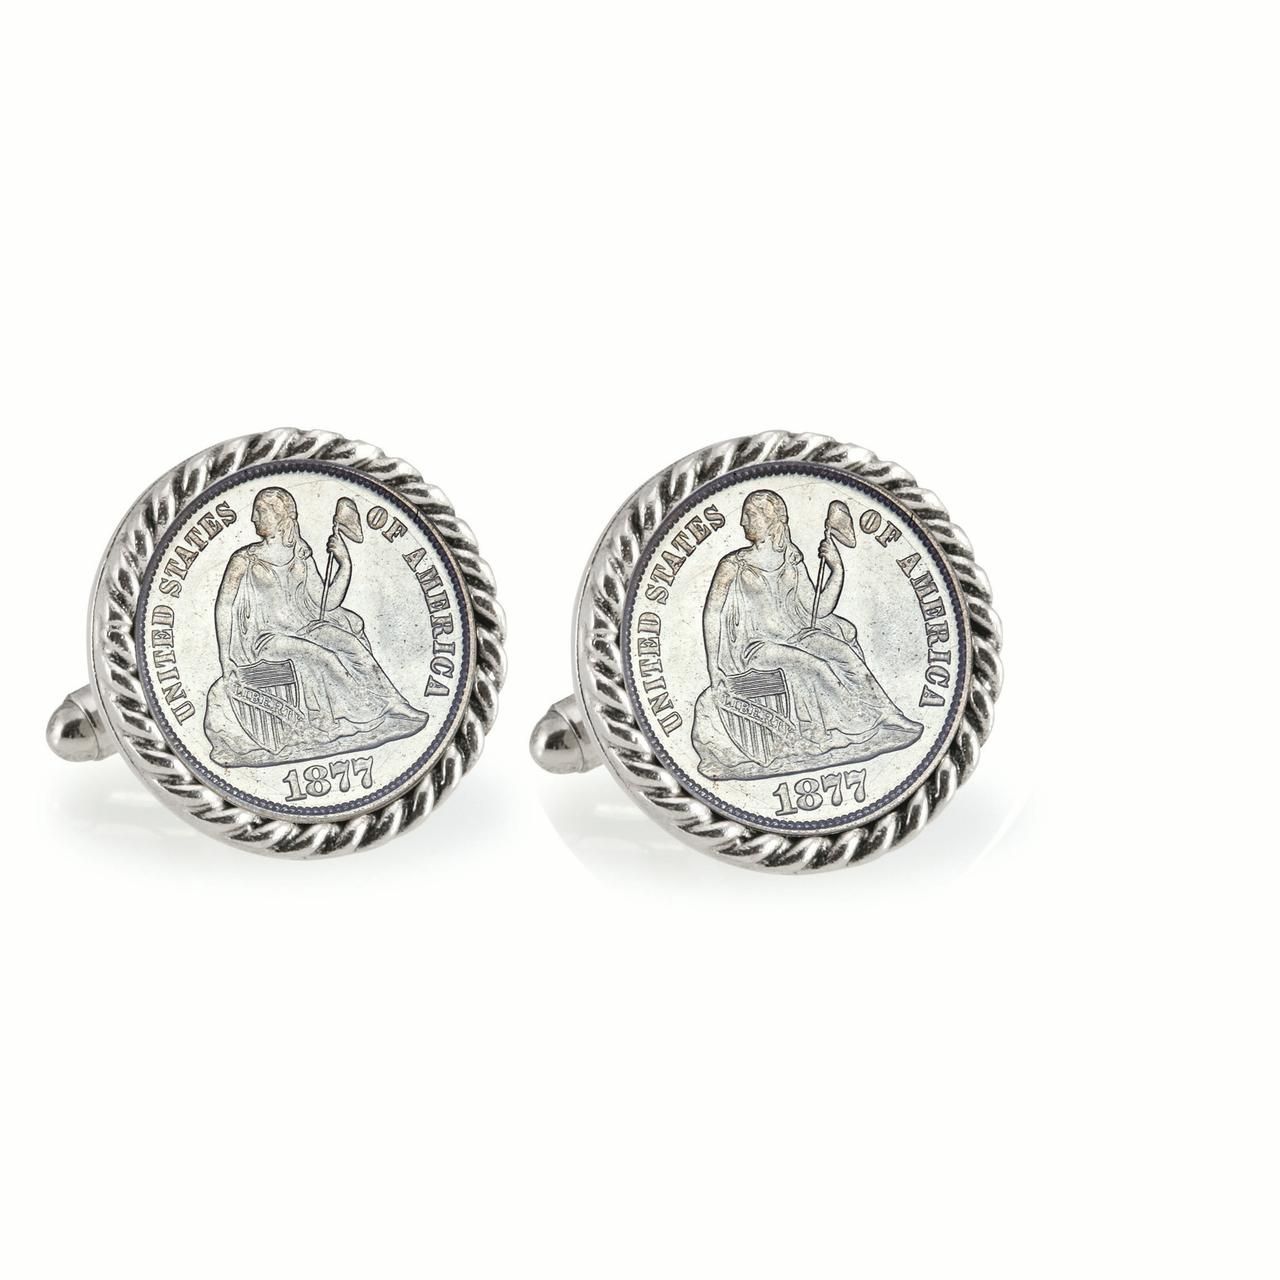 Seated Liberty Silver Dime Silvertone Rope Bezel Coin Cuff Links